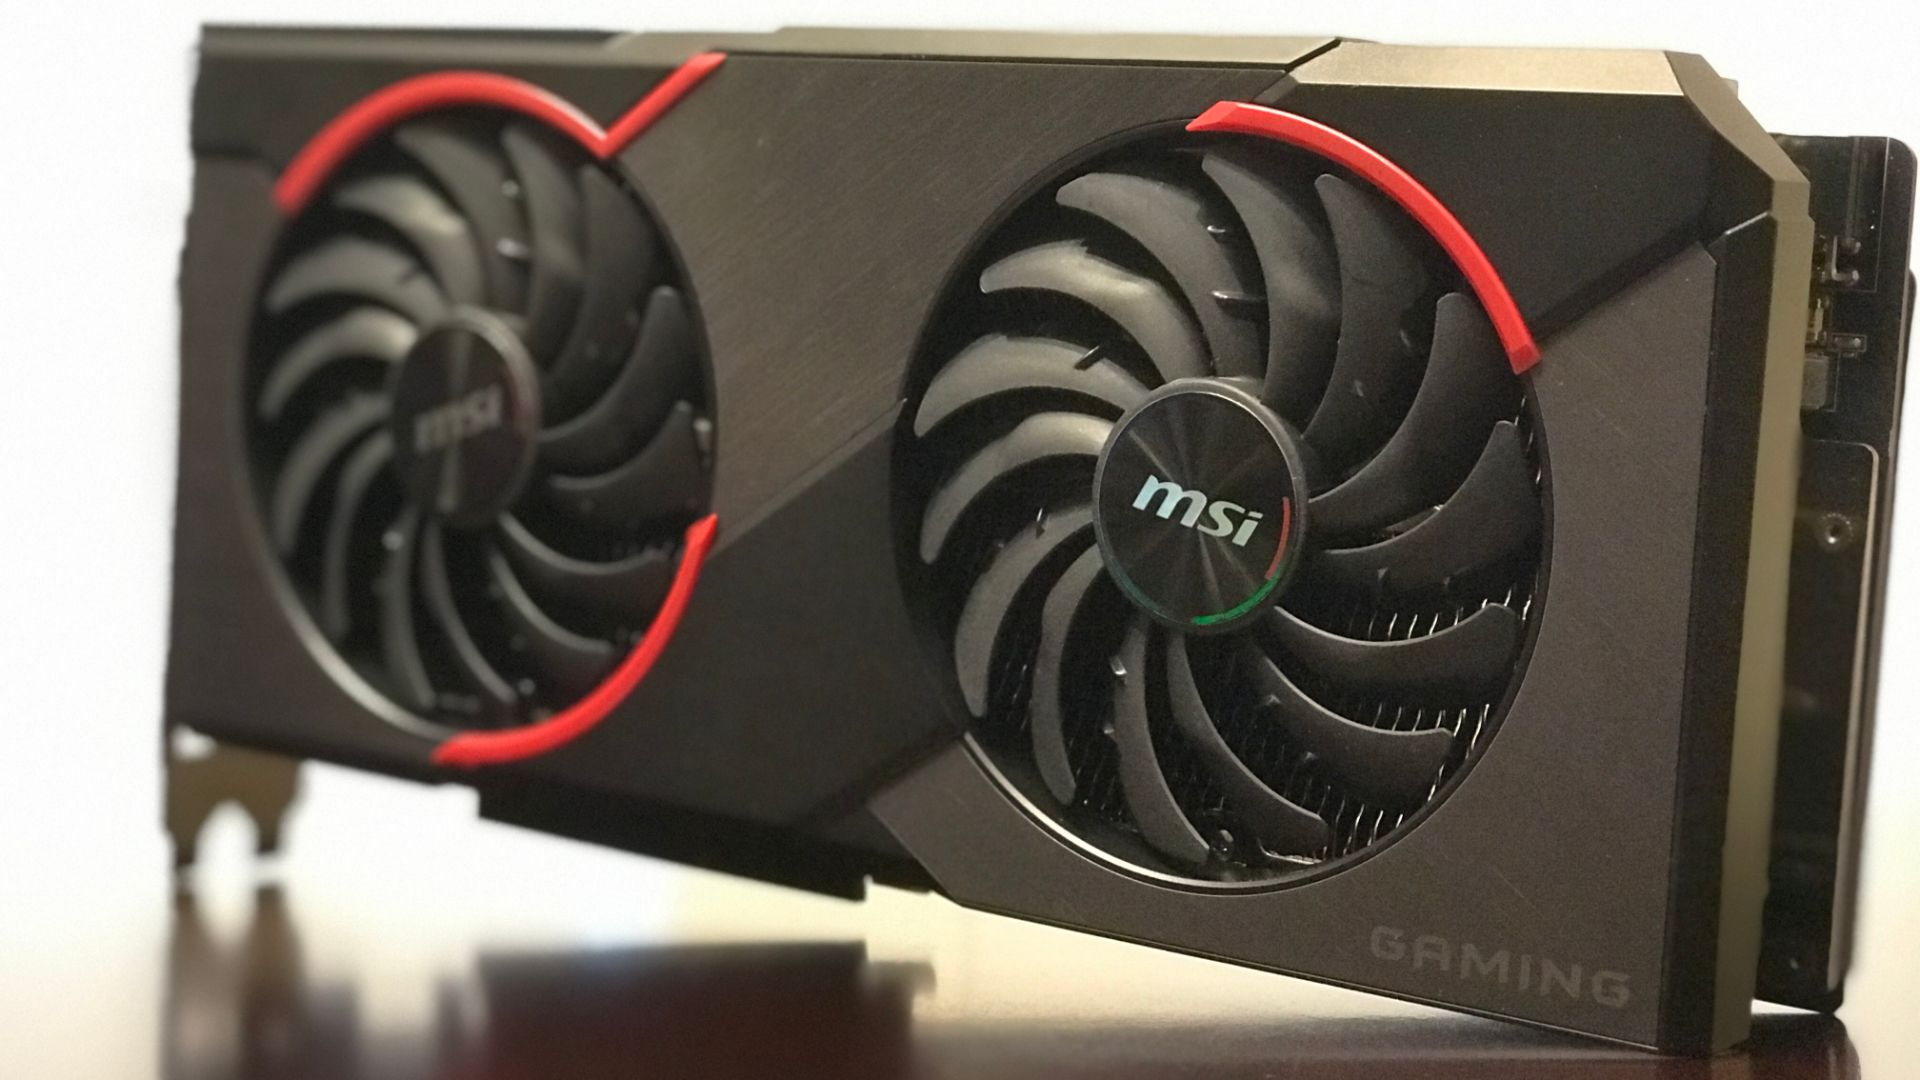 MSI Radeon RX 5700 XT GAMING X Review